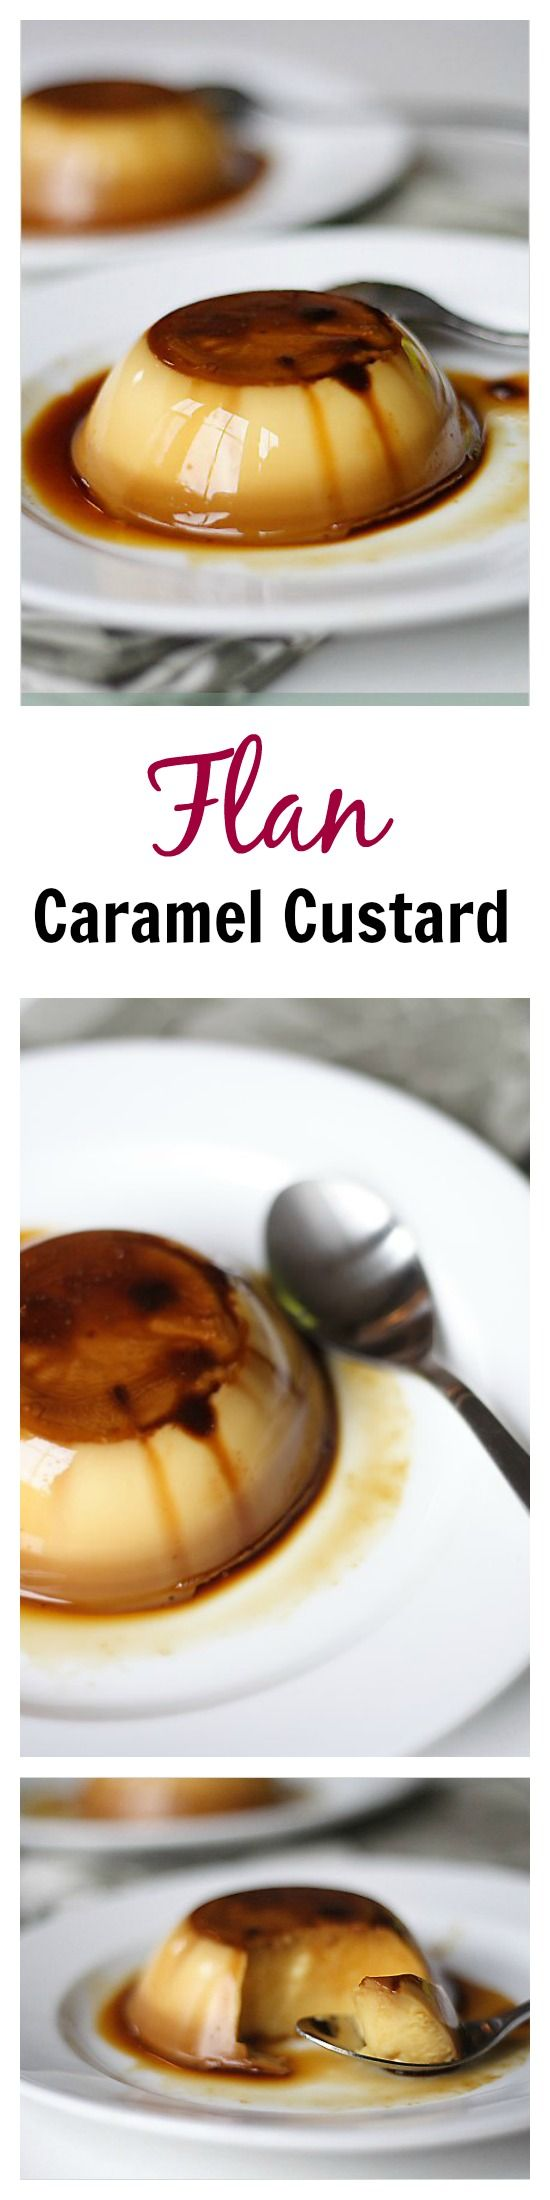 Flan or caramel custard recipe. Easy, sweet, silky smooth egg custard with caramel sauce.